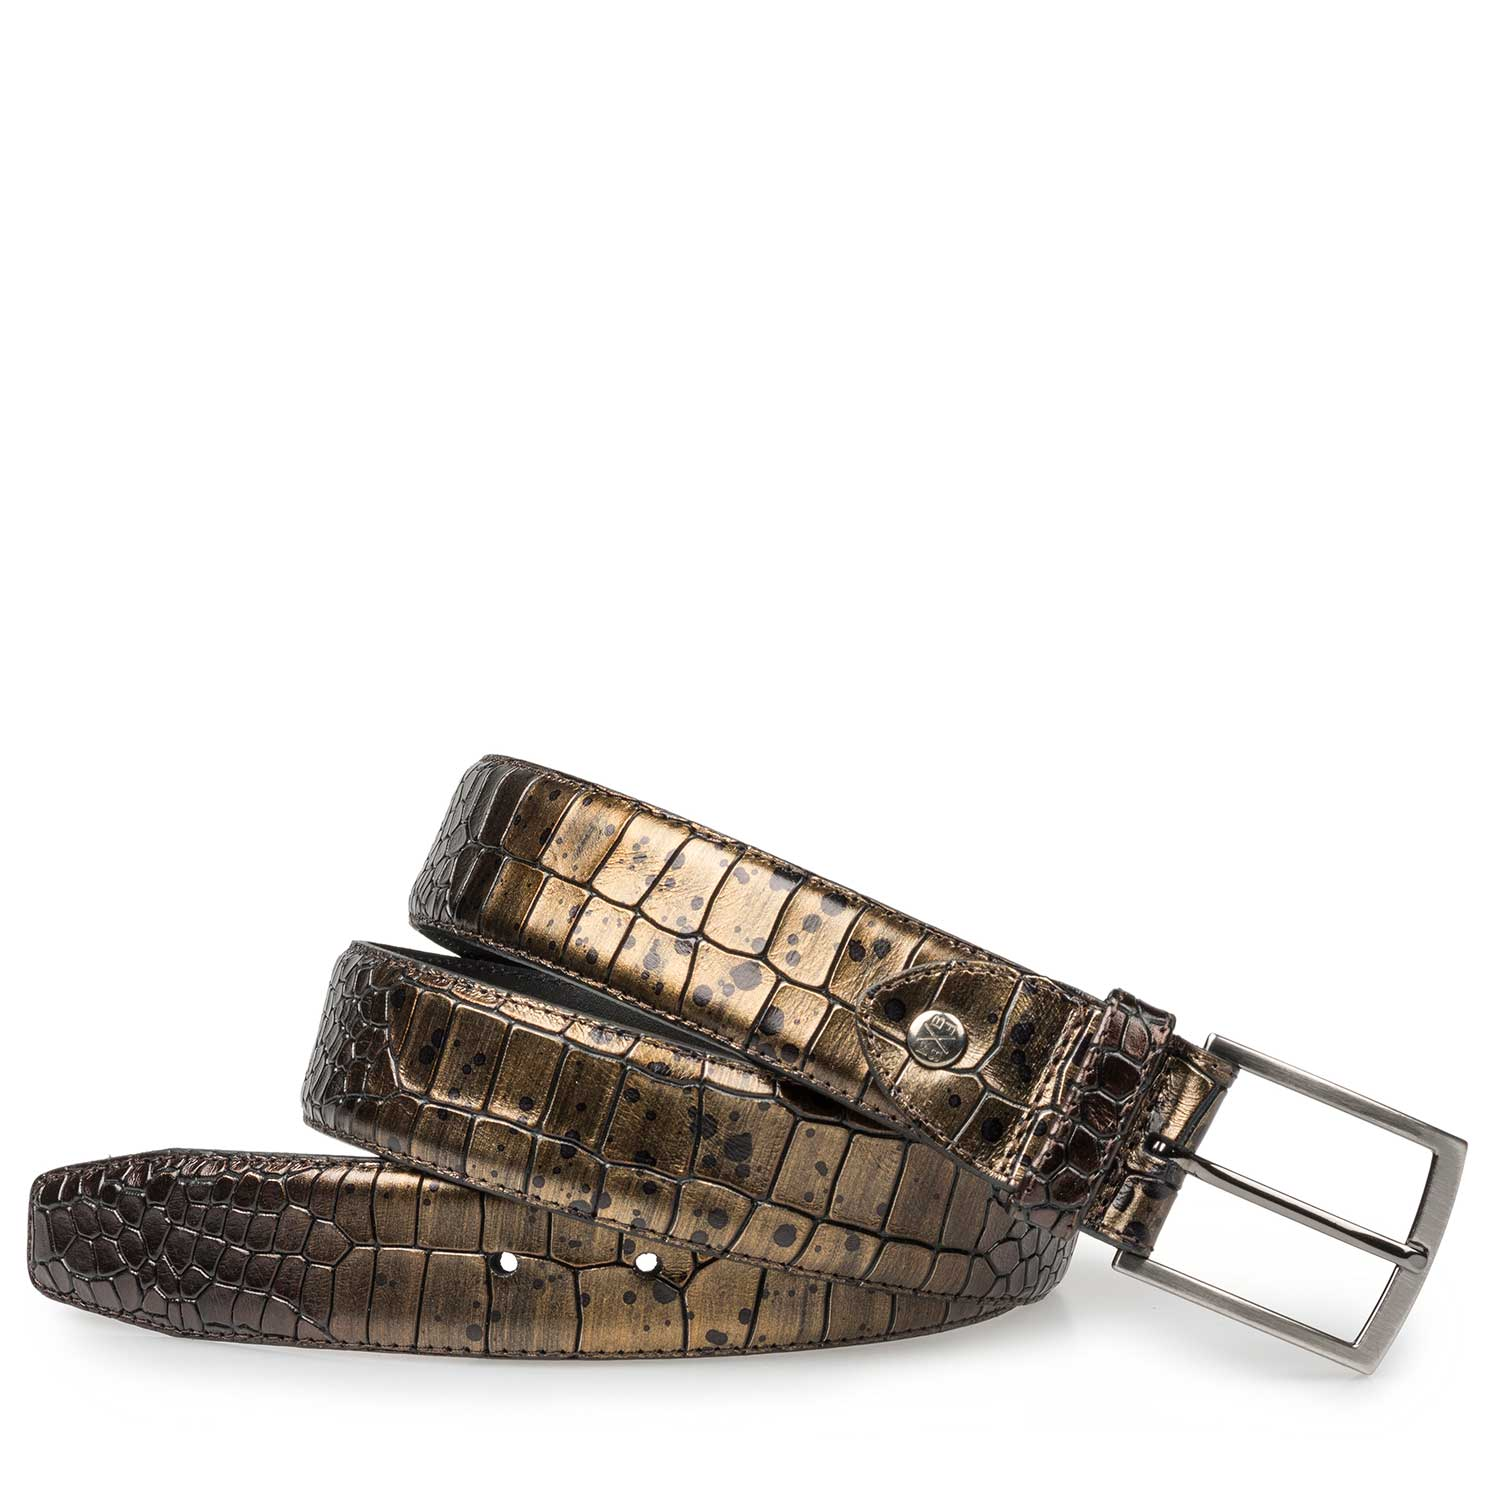 75190/09 - Bronze-coloured leather belt with croco print